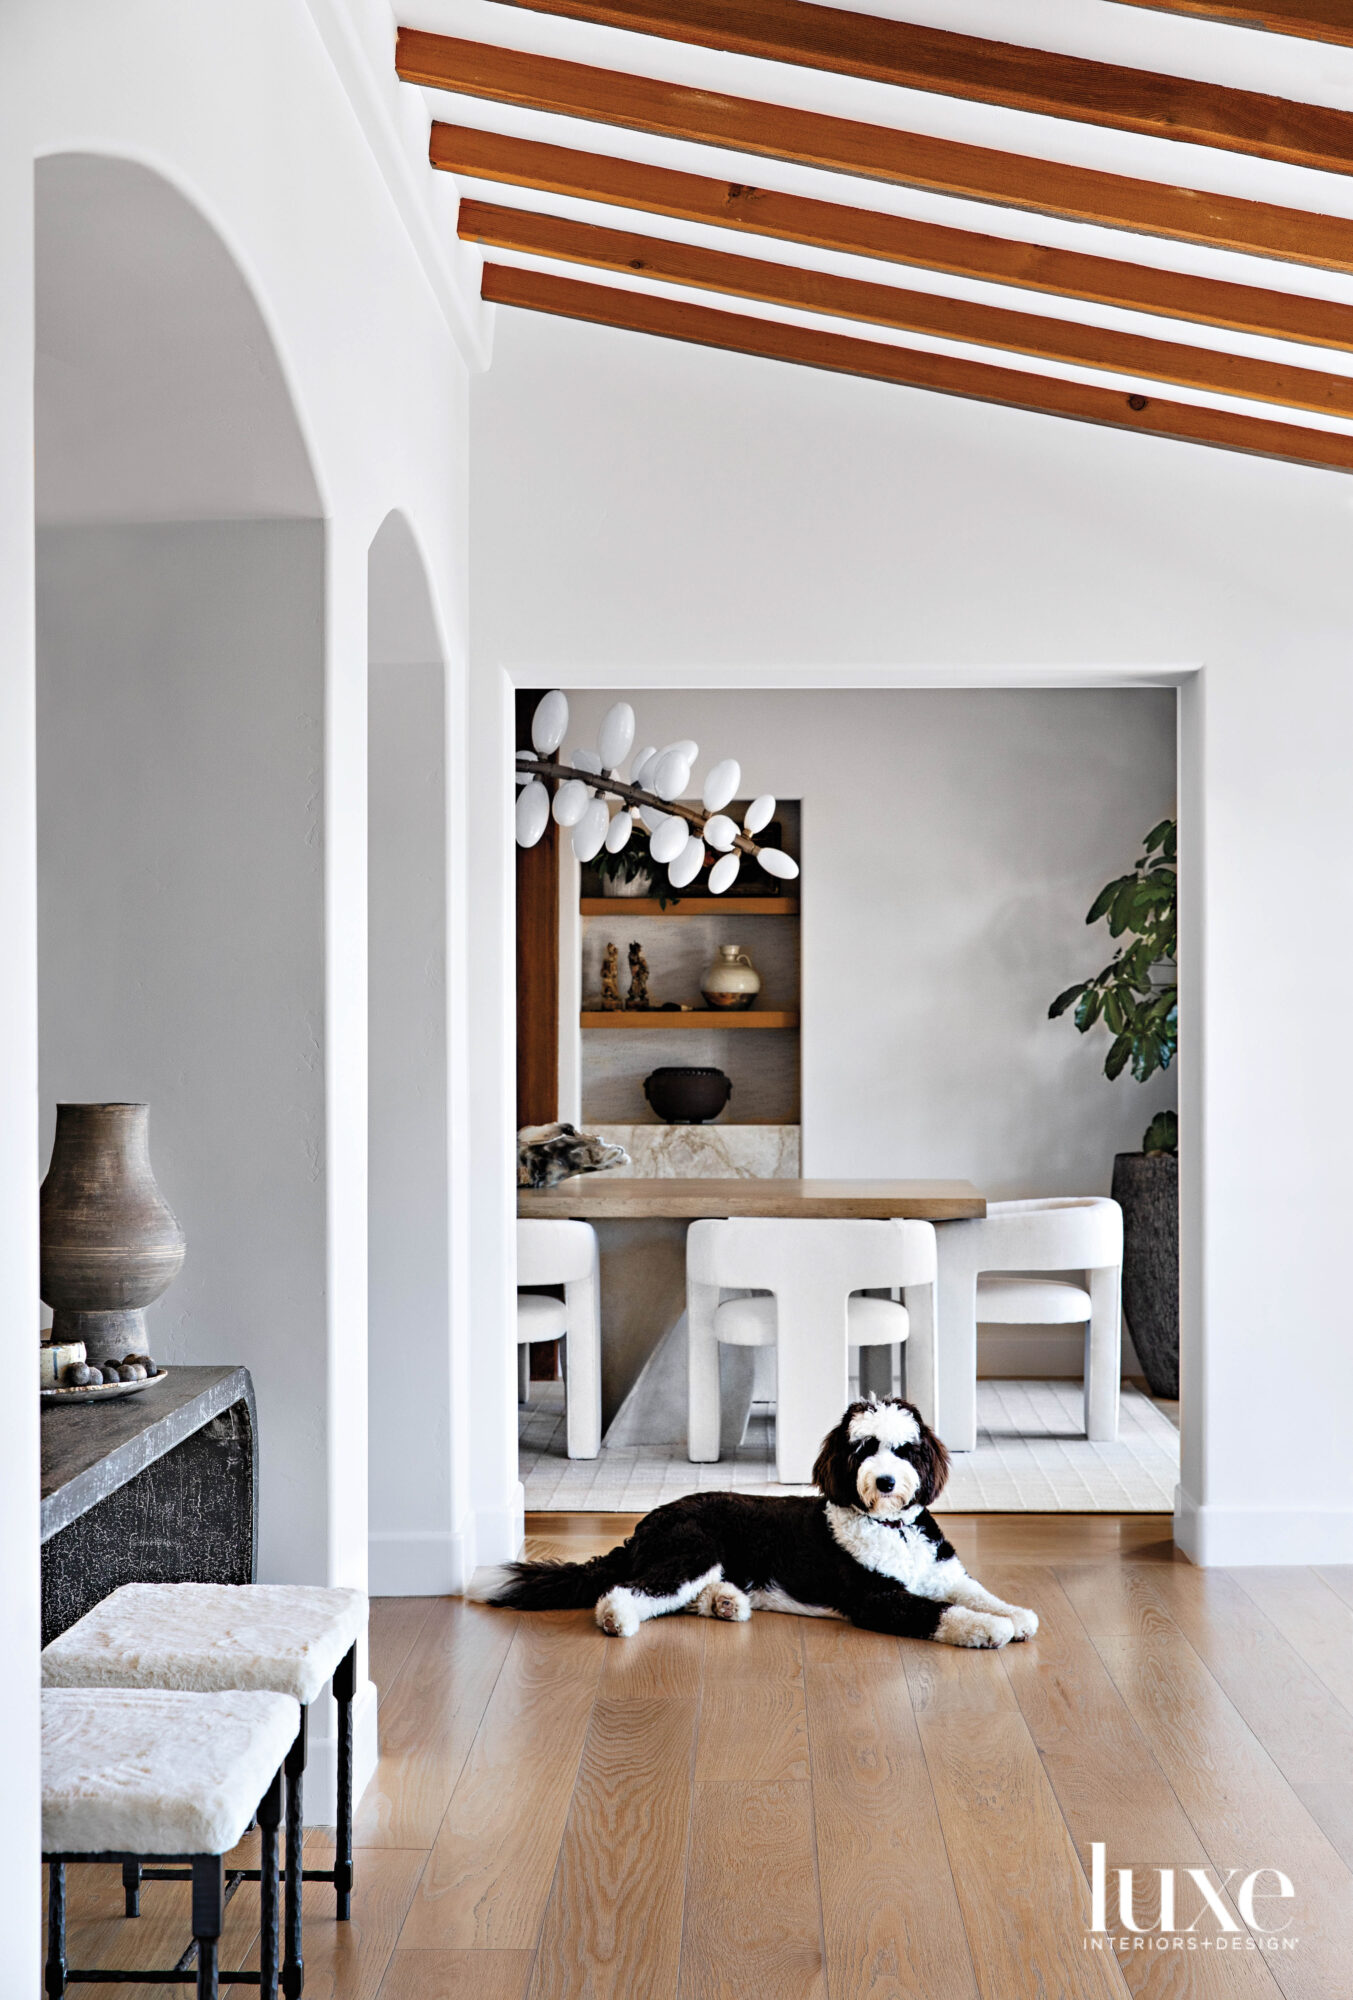 Entryway with dog resting in front of dining room